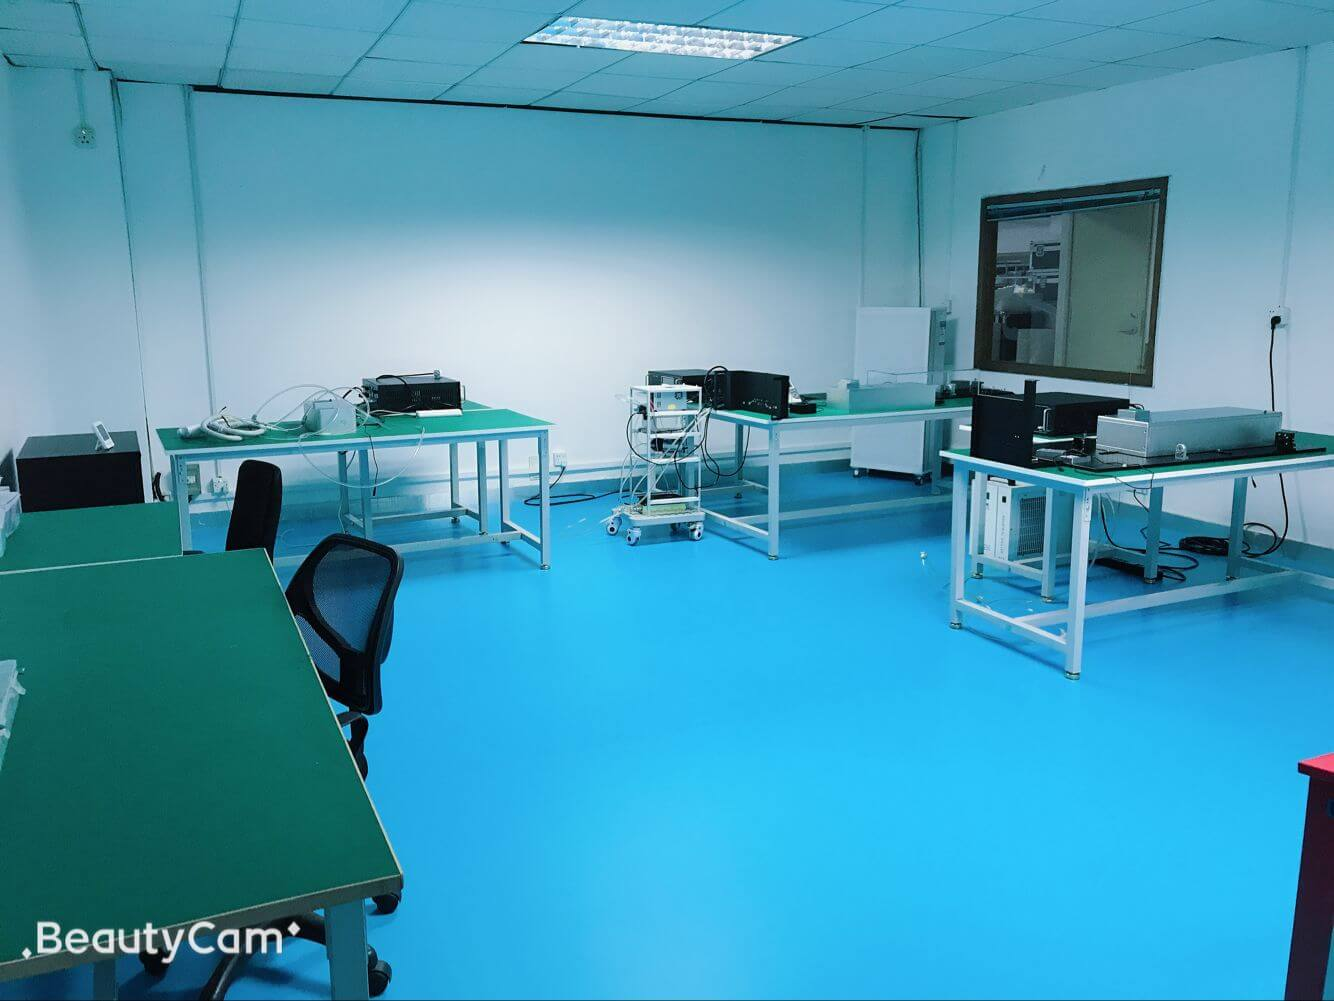 picosure laser lab